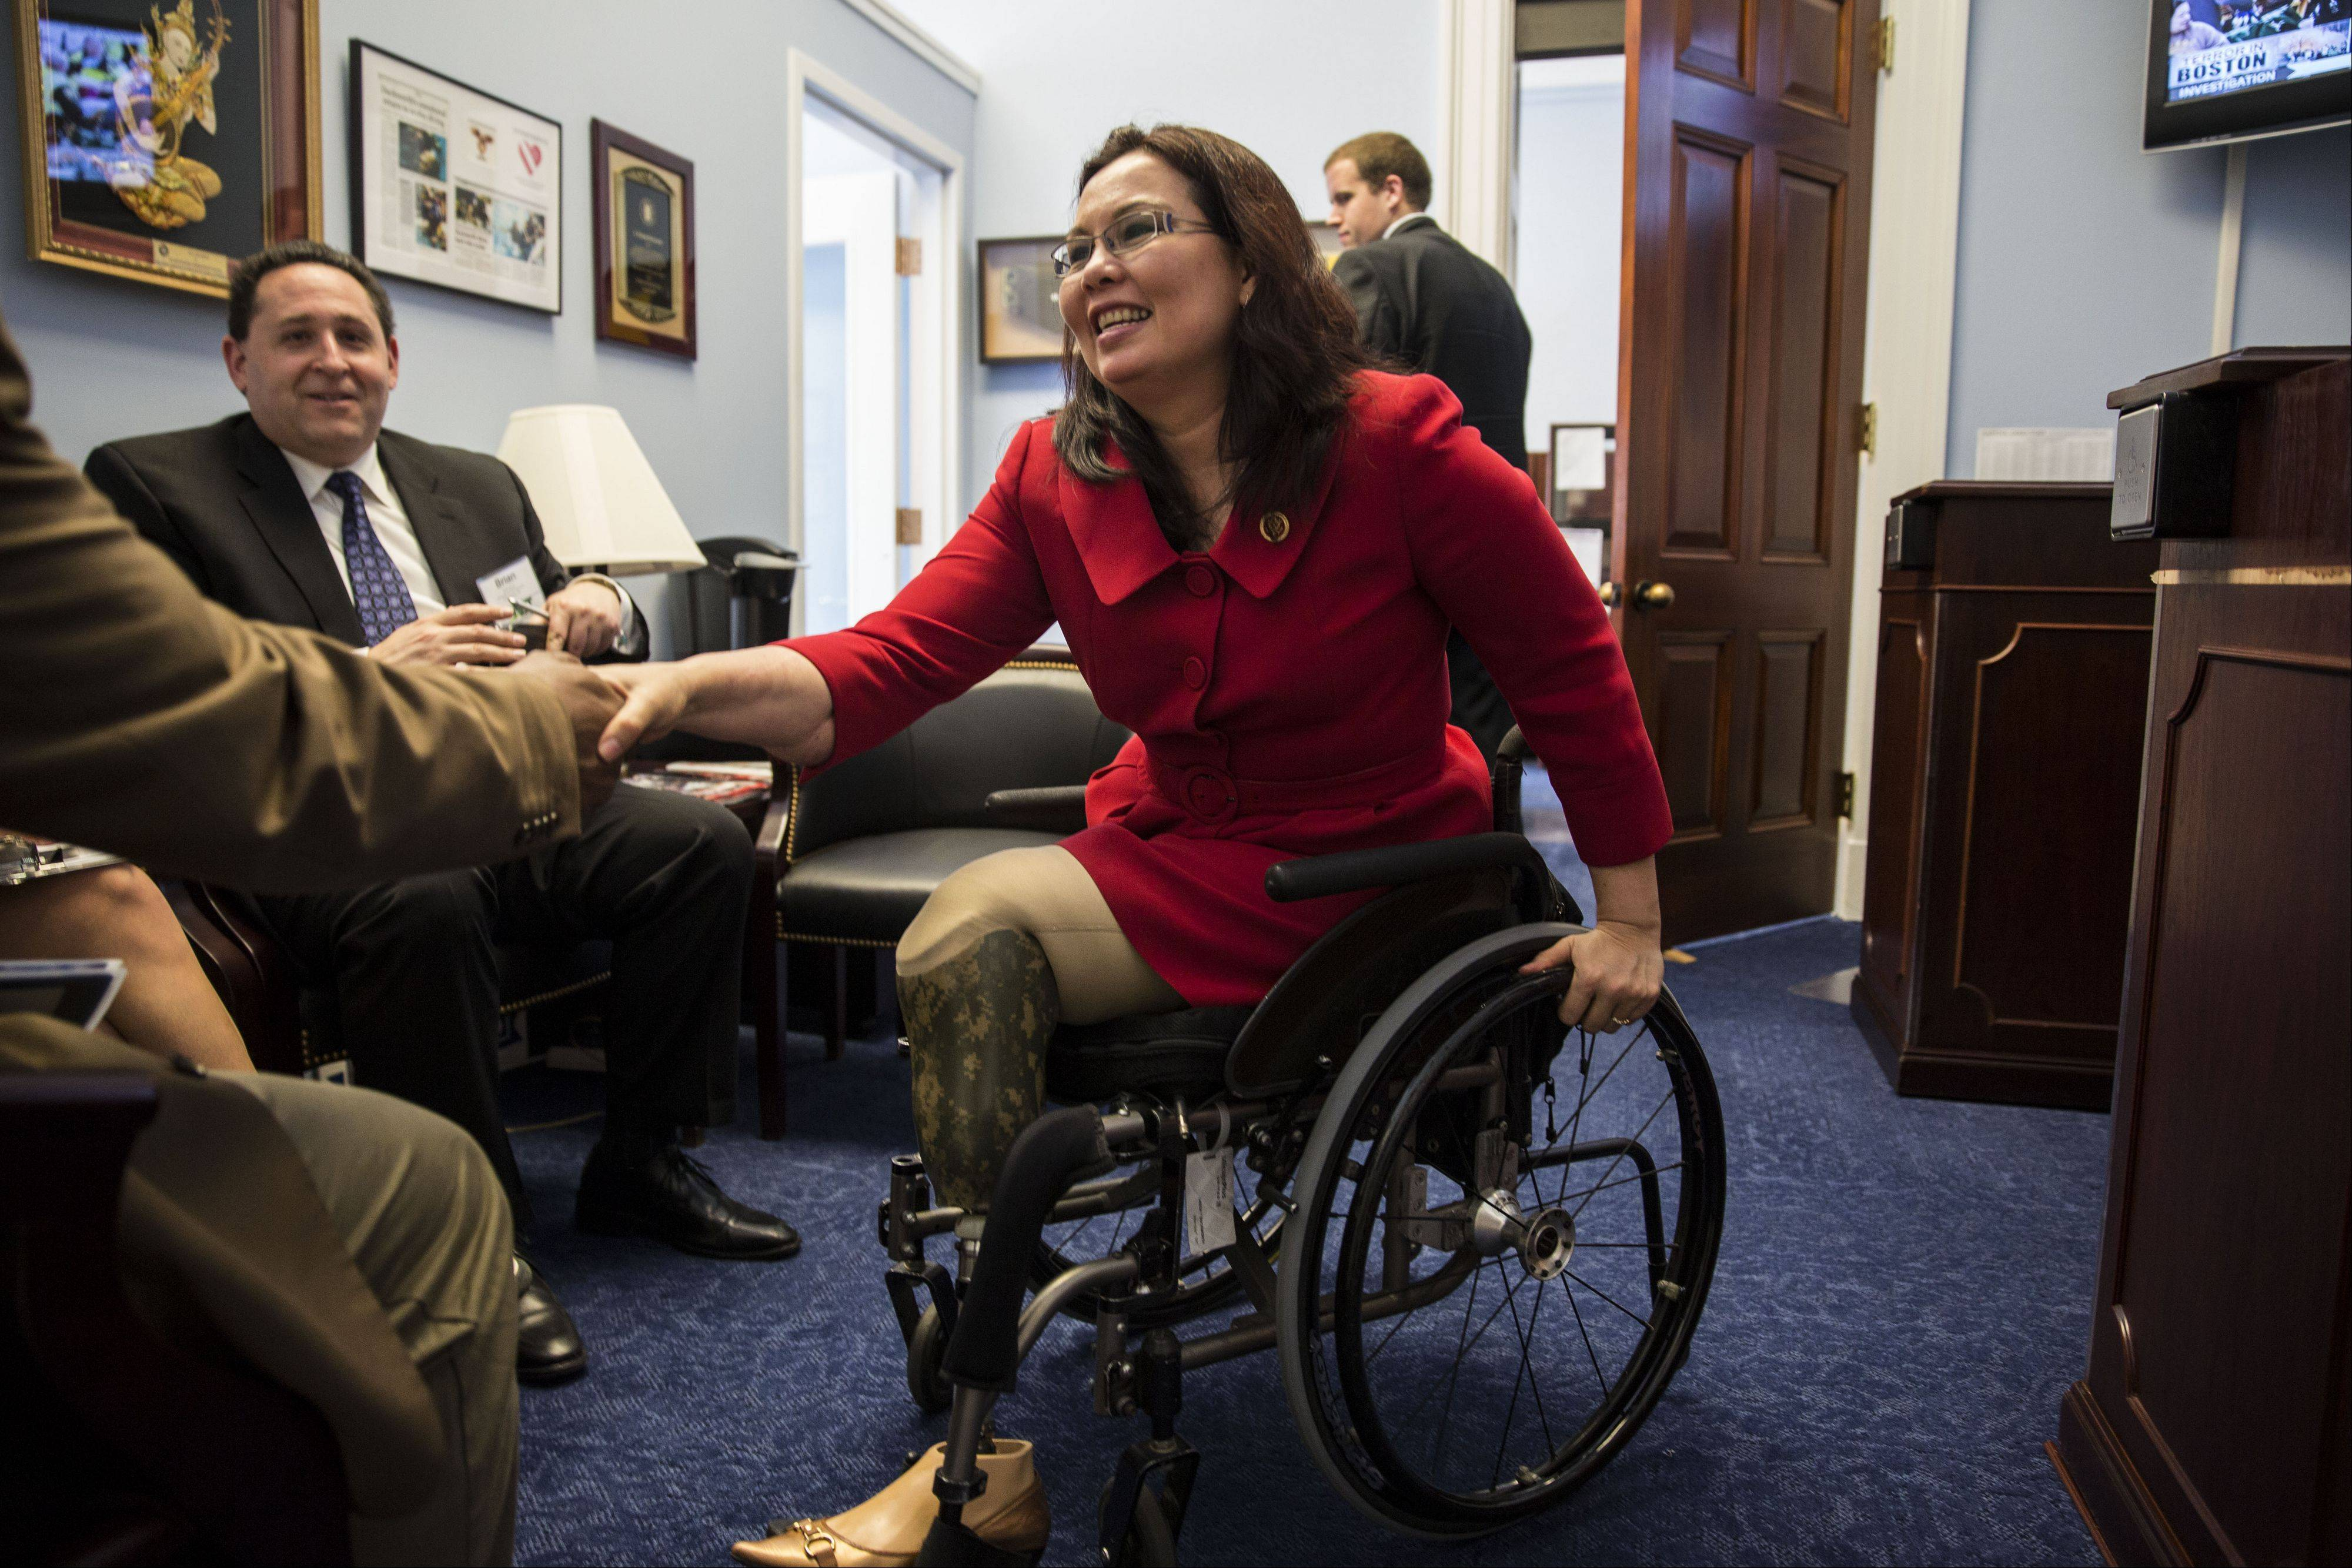 Democratic U.S. Rep. Tammy Duckworth of Hoffman Estates meets with constituents in her Cannon House congressional office in Washington, D.C.